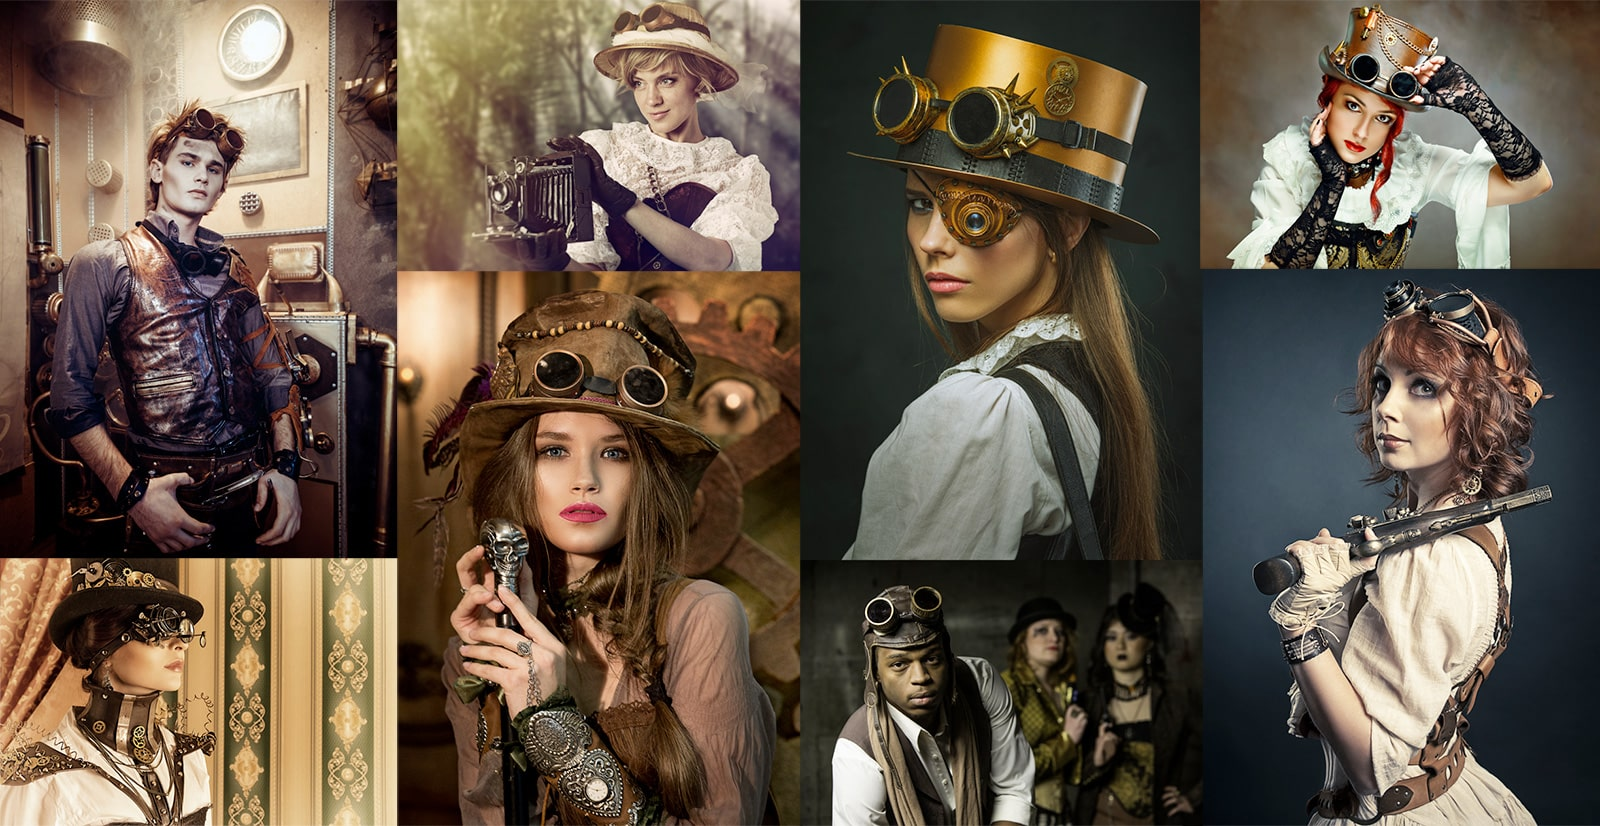 Steampunk costumes with goggles